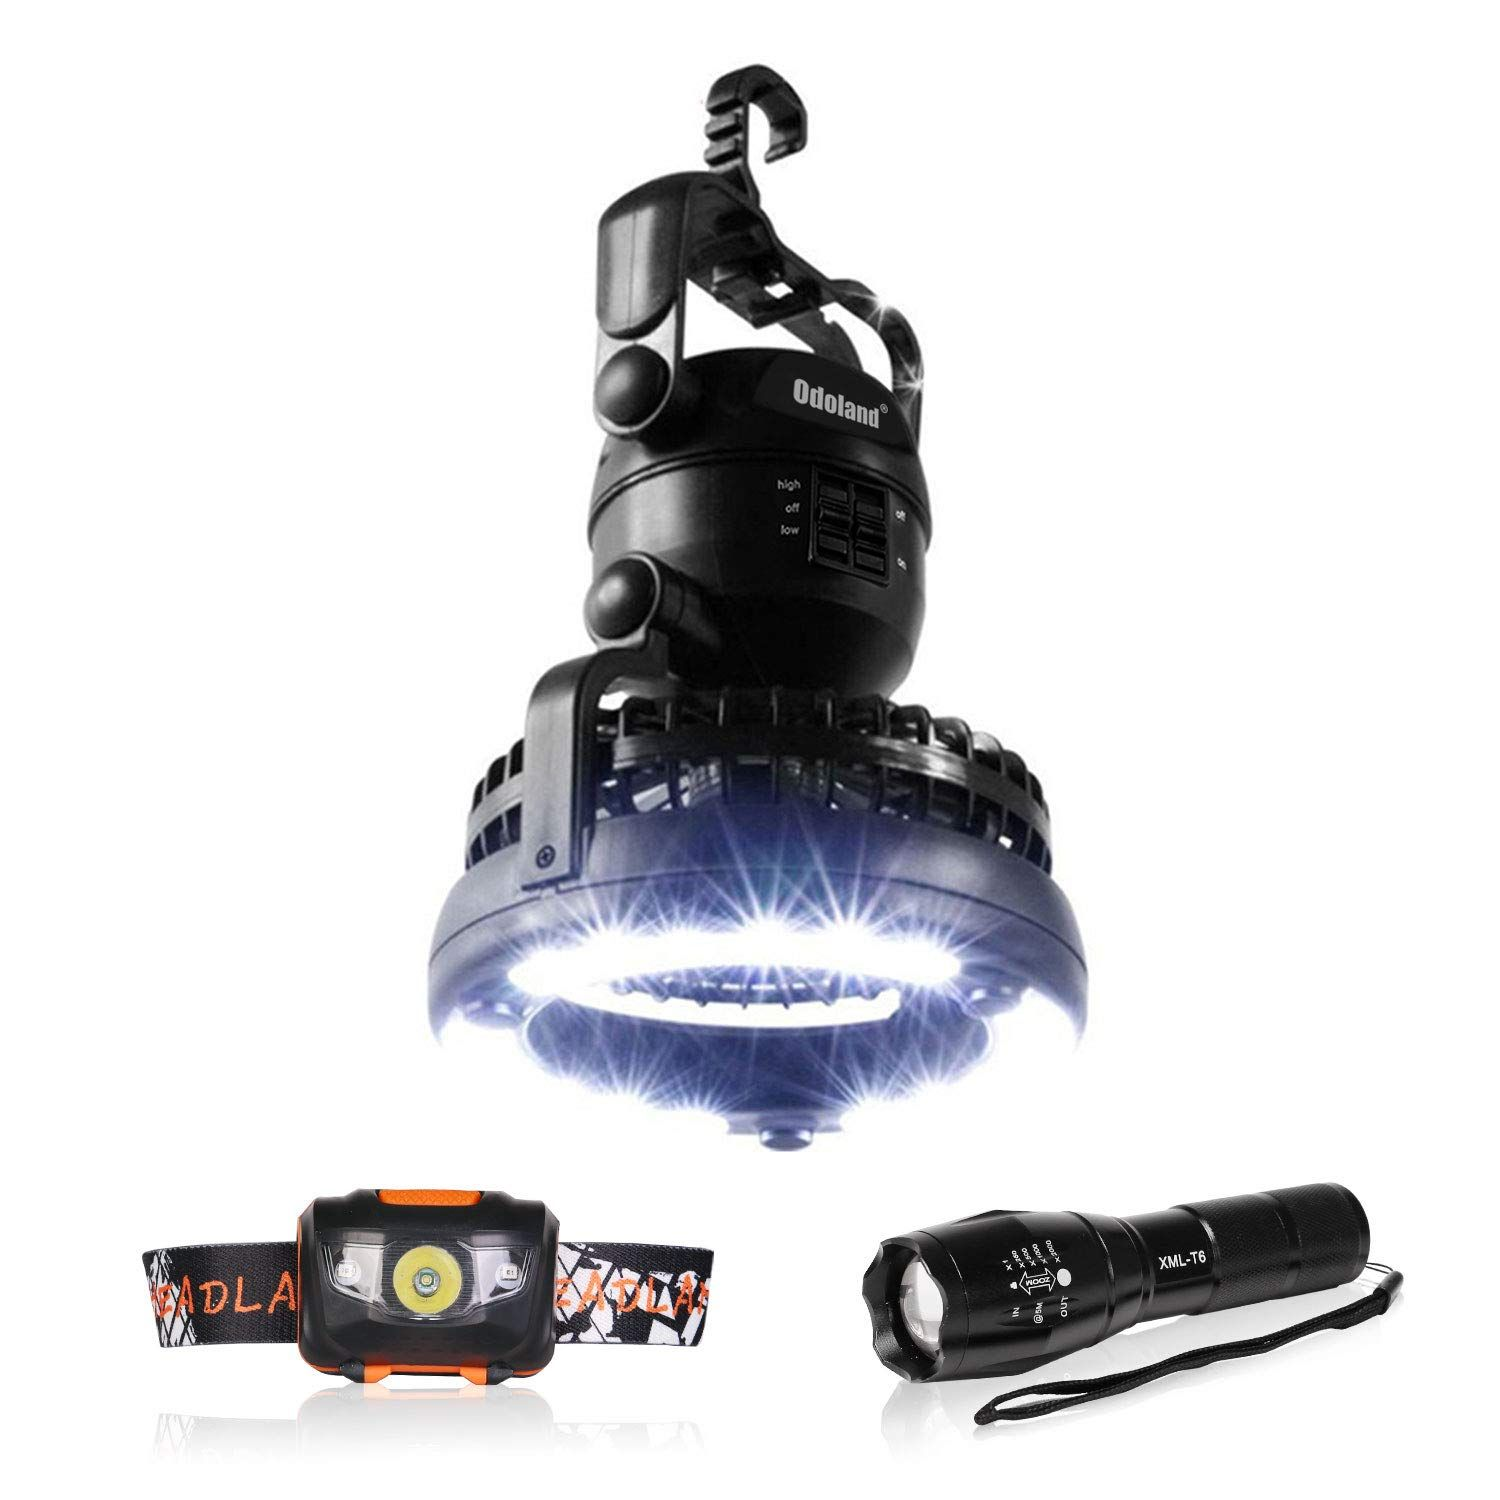 LED Flashlight and Headlamp Perfect for Outdoor Hiking Fishing Camping and Hurricane Emergency Kit Odoland 3-in-1 Portable LED Camping Lantern with Ceiling Fan